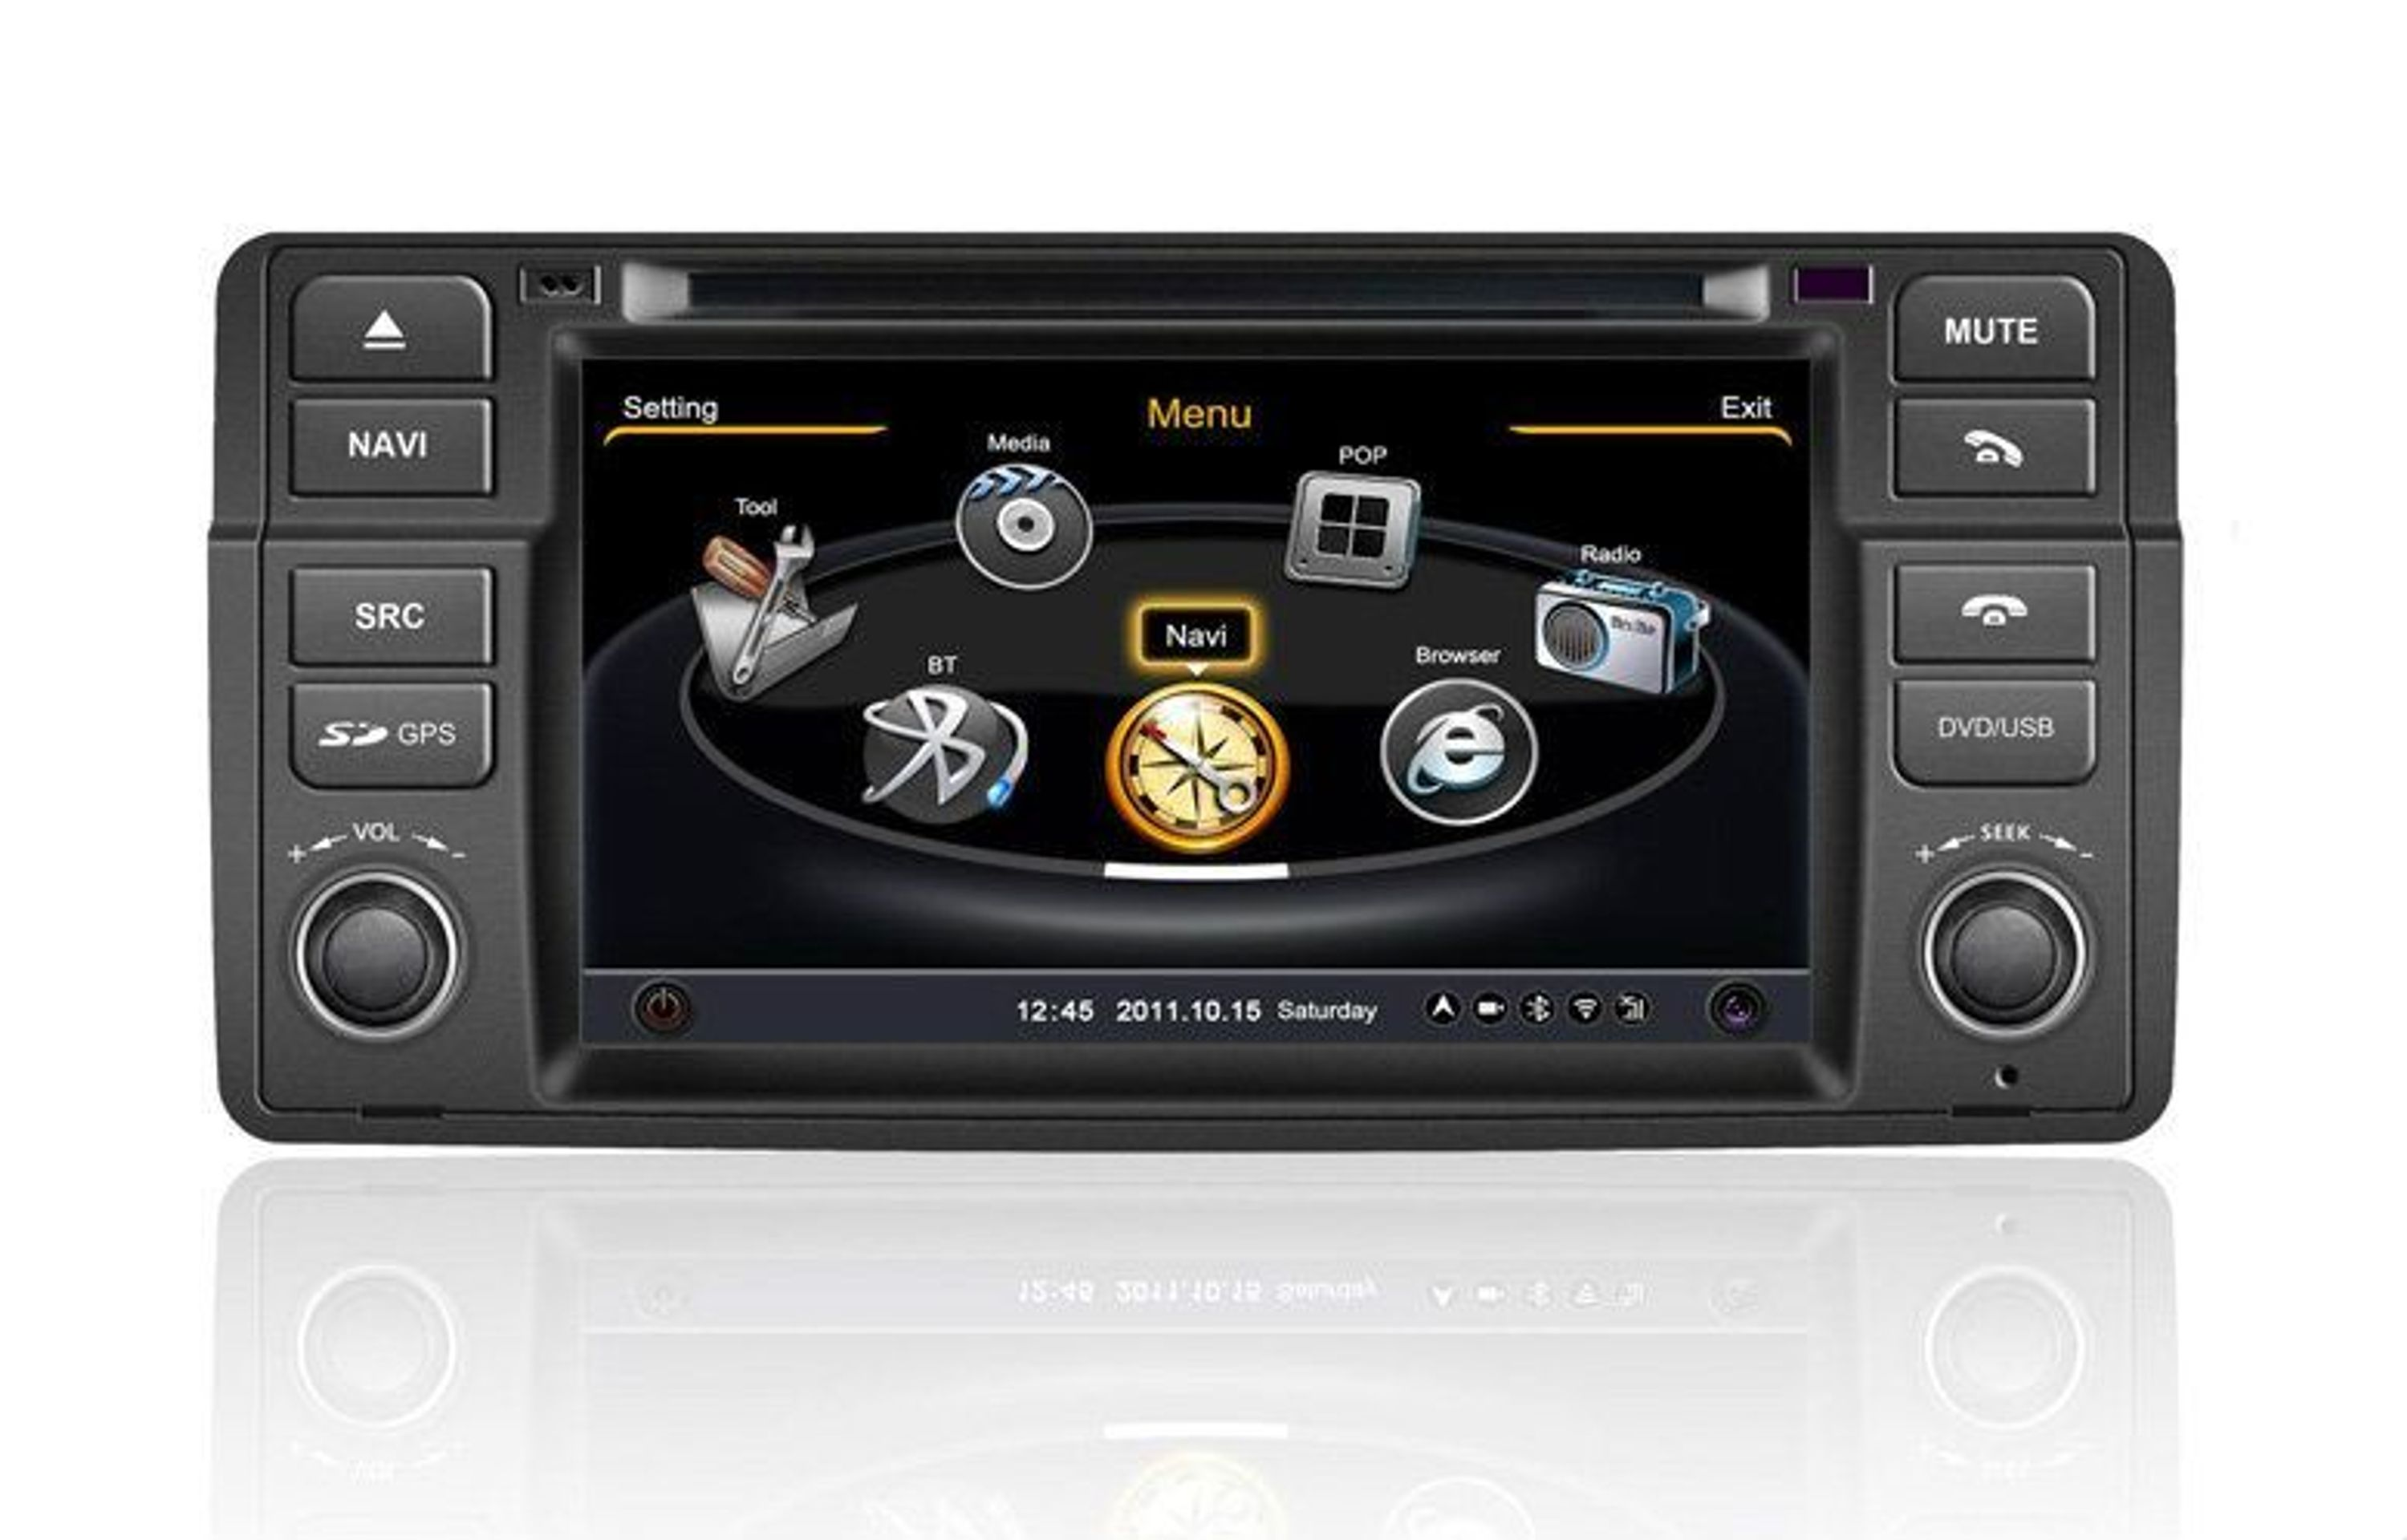 bmw e46 autoradio navigation gps tmc dvd mp3 usb sd 3d dvb t kaufen bei. Black Bedroom Furniture Sets. Home Design Ideas